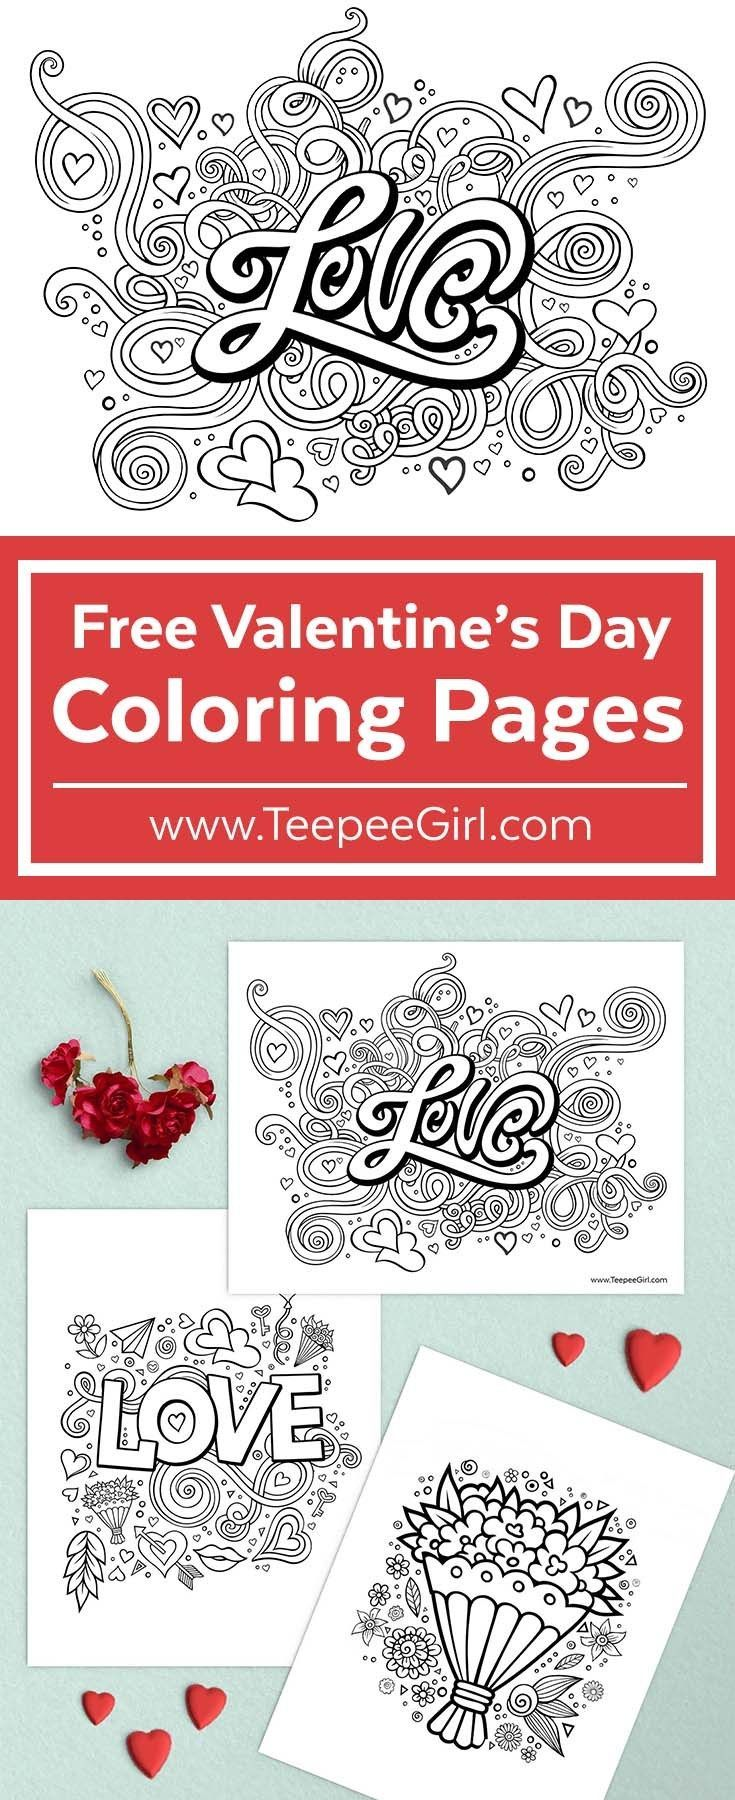 269 best coloring images on Pinterest | Coloring pages, Coloring ...